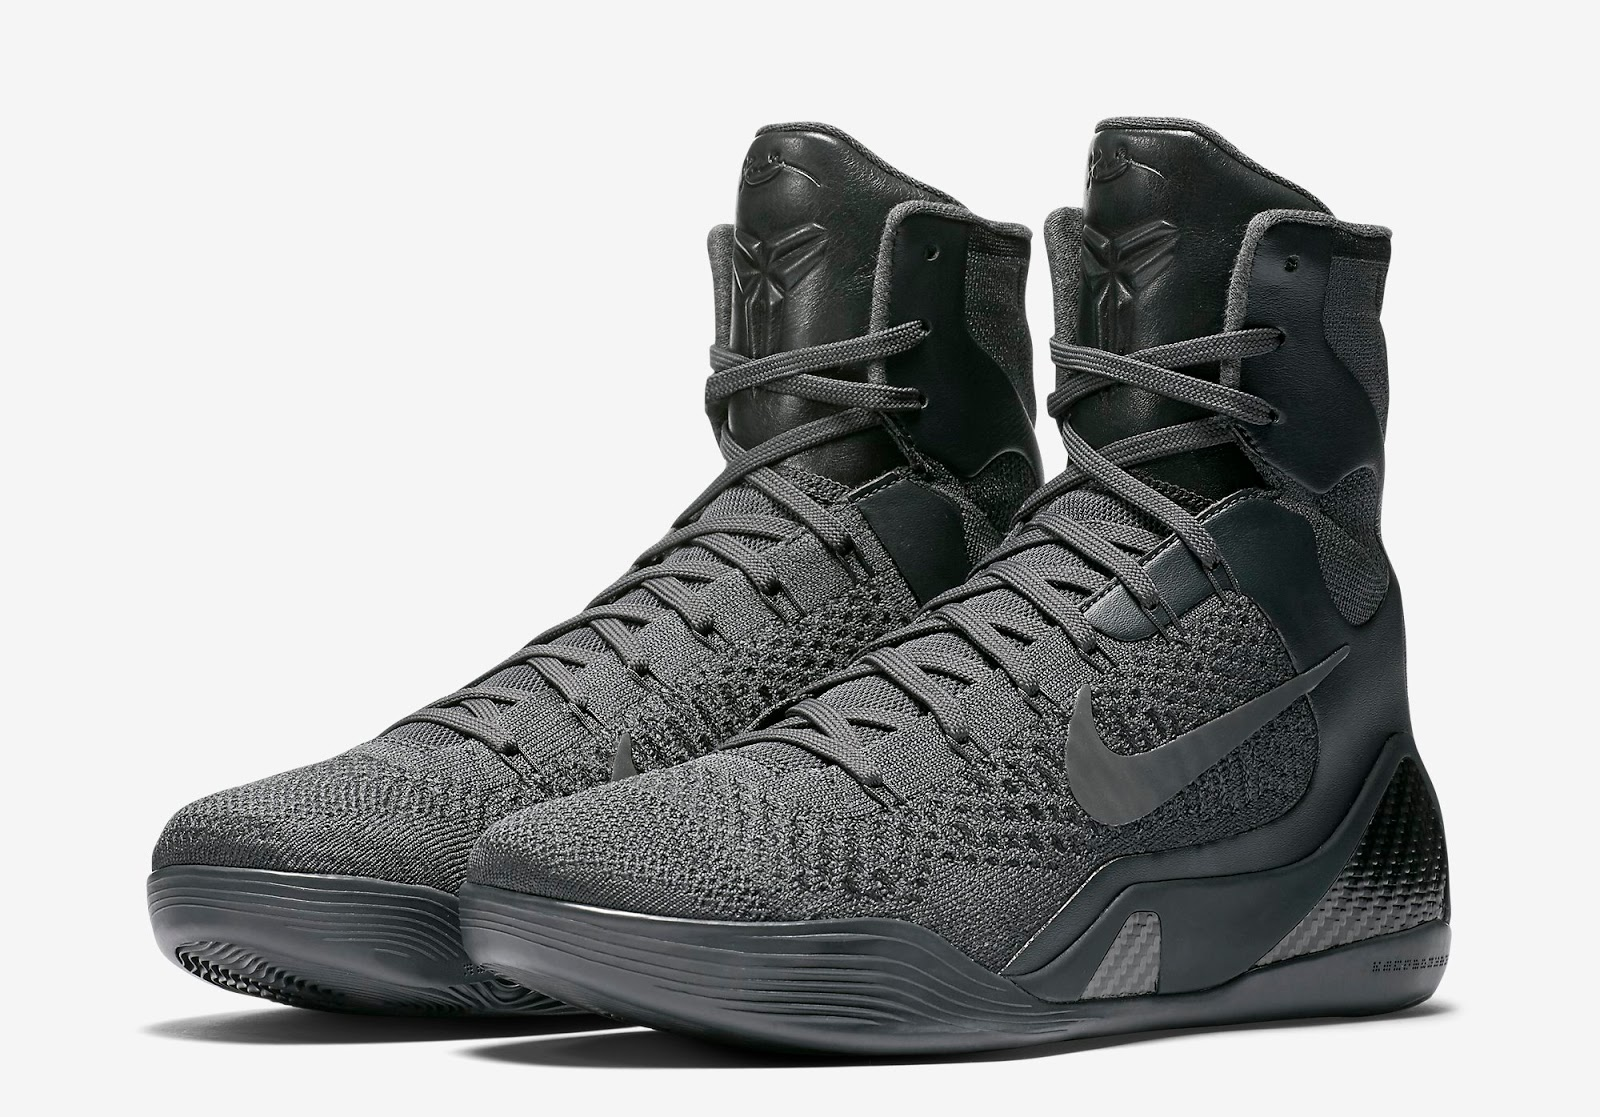 d5d8ce5d3355aa ajordanxi Your  1 Source For Sneaker Release Dates  Nike Kobe 9 ...